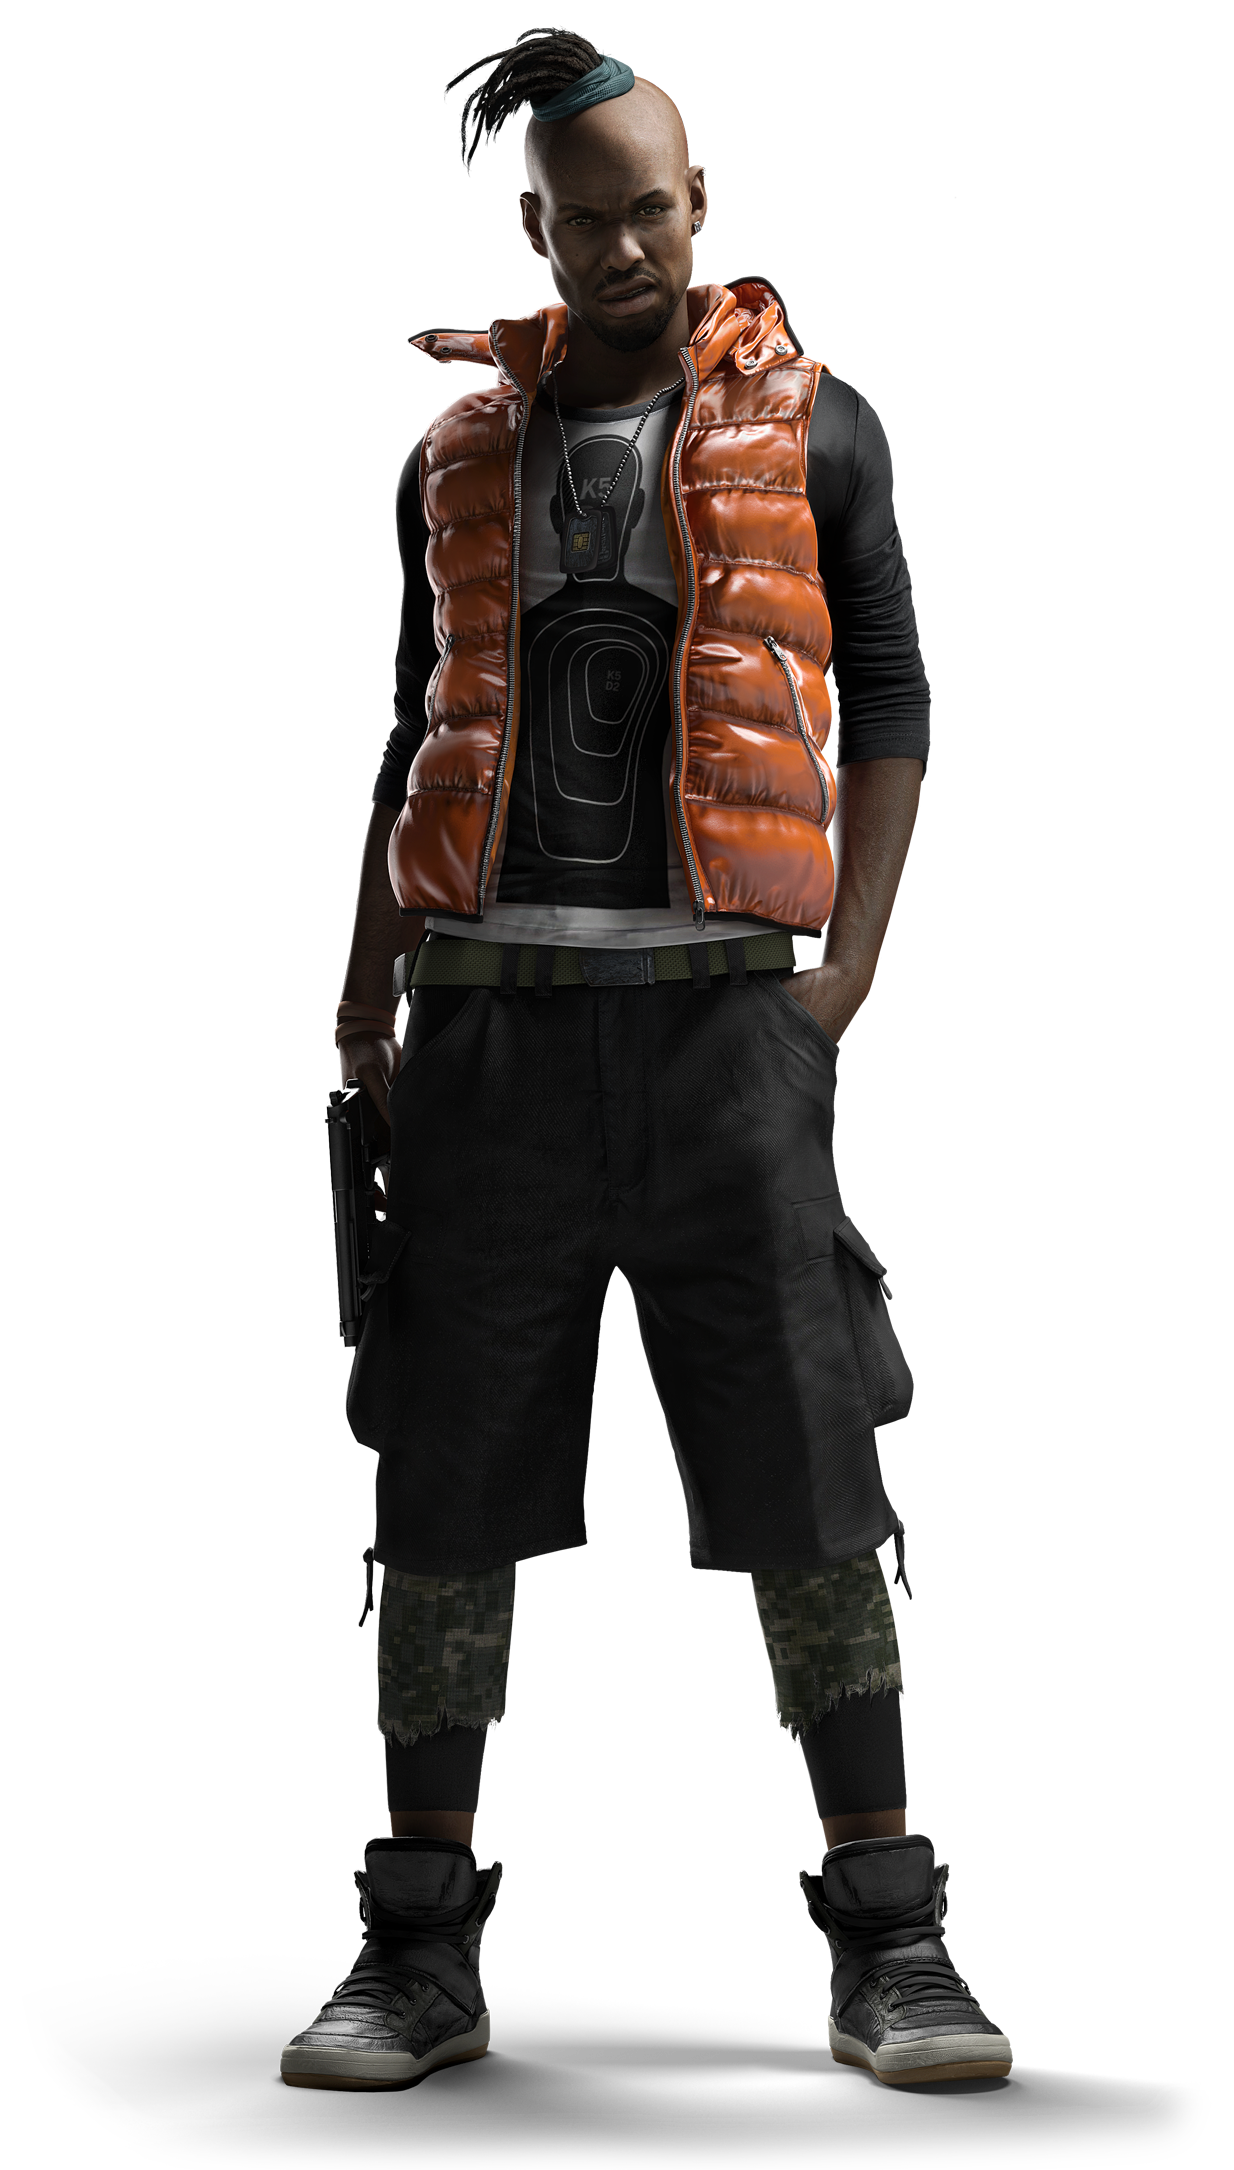 Watch Dogs Anthony Wade.png - Watch Dogs, Transparent background PNG HD thumbnail